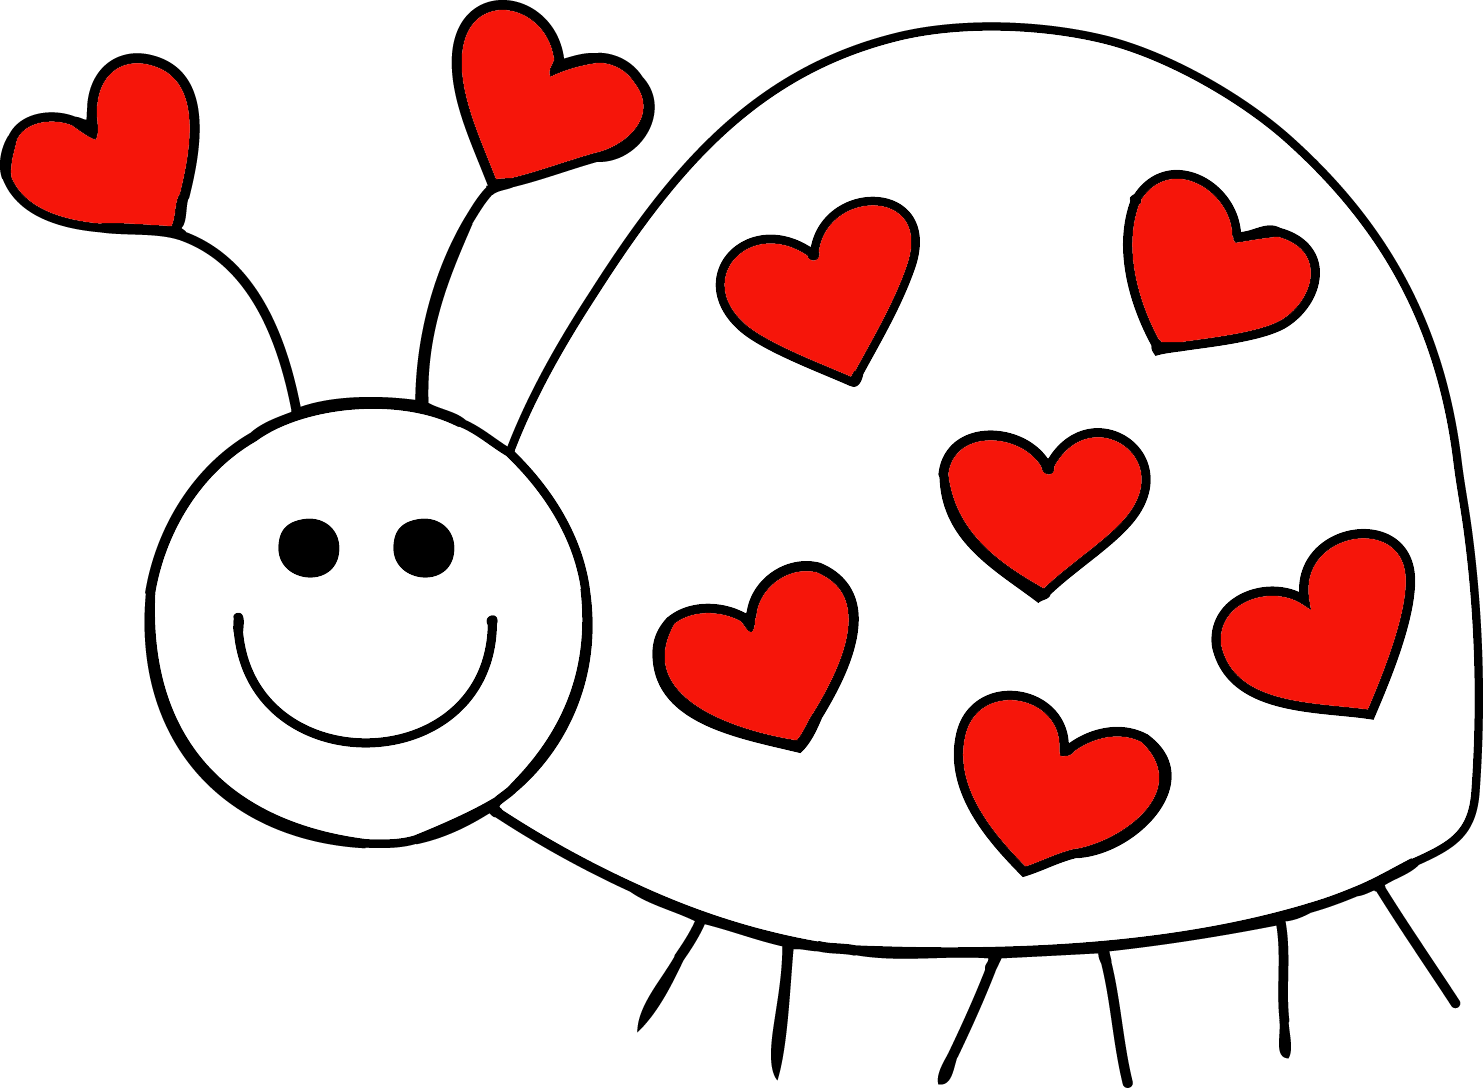 free valentine clipart at getdrawings com free for personal use rh getdrawings com free clipart valentine's day free valentine clipart for friends